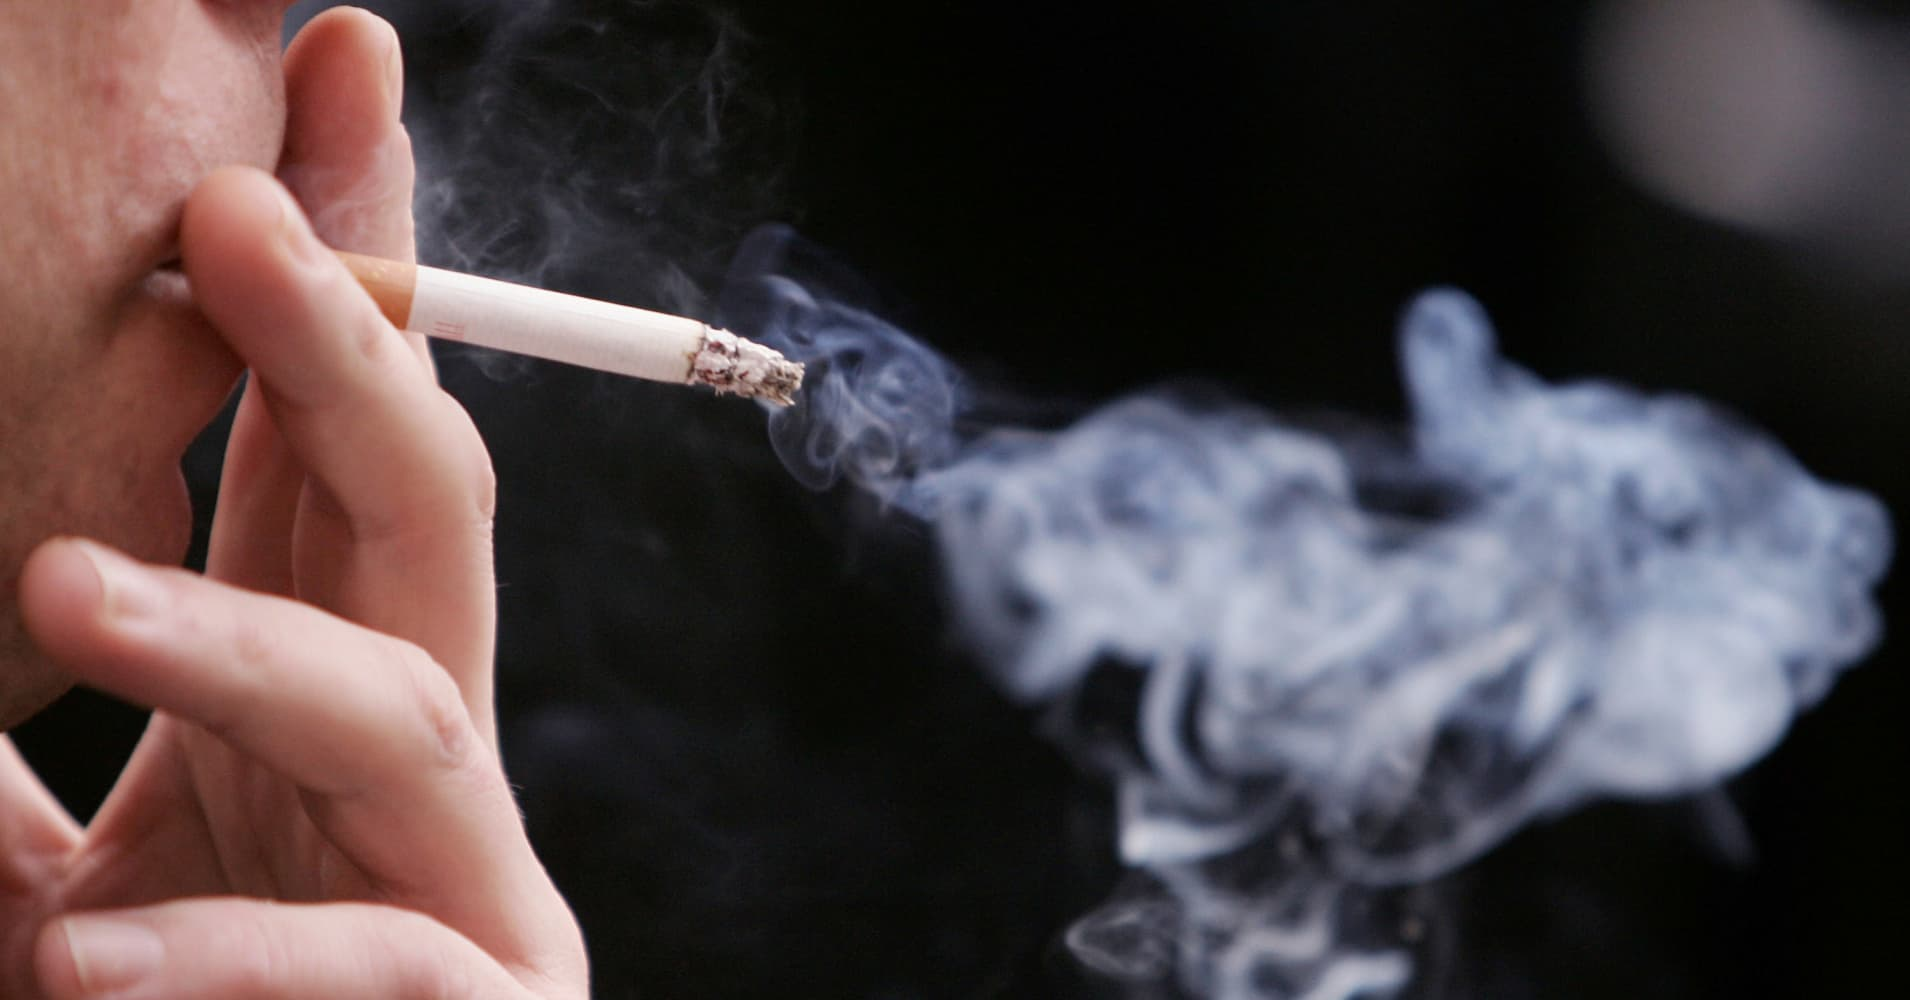 CDC says smoking rates fall to record low in US